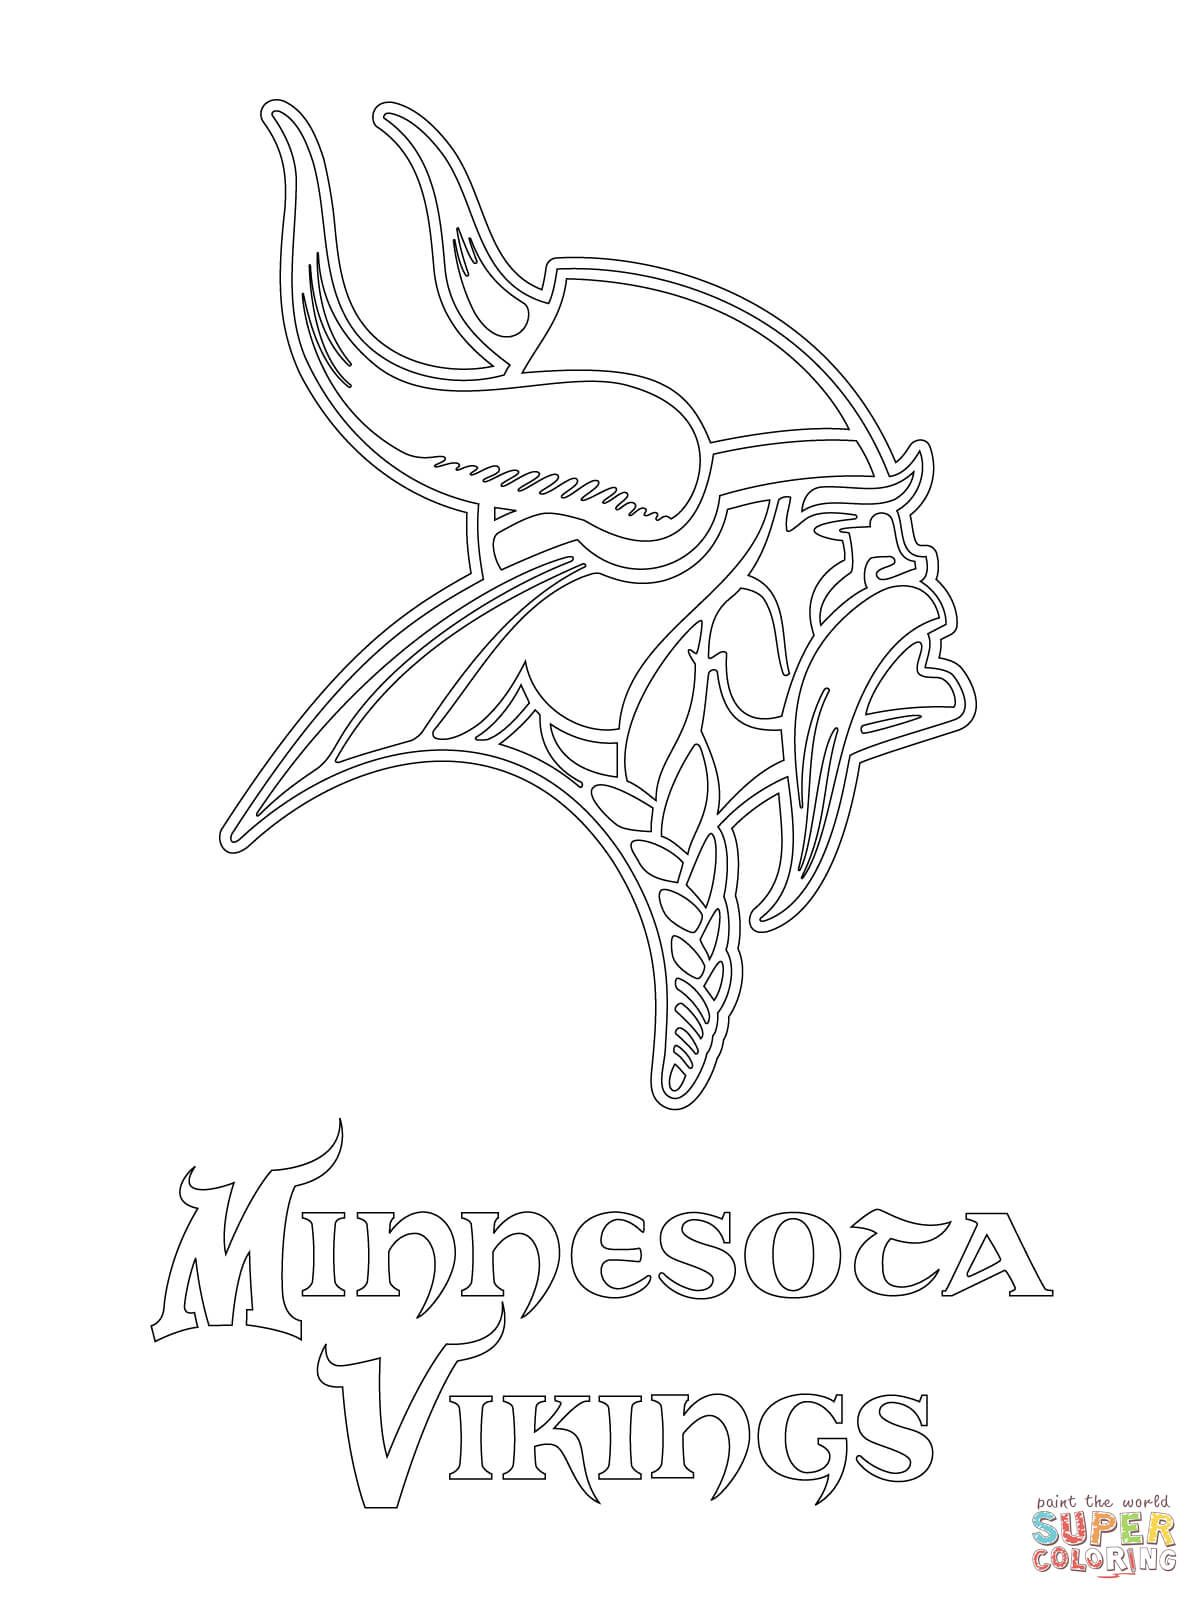 Minnesota Vikings Logo Coloring Page From Nfl Category